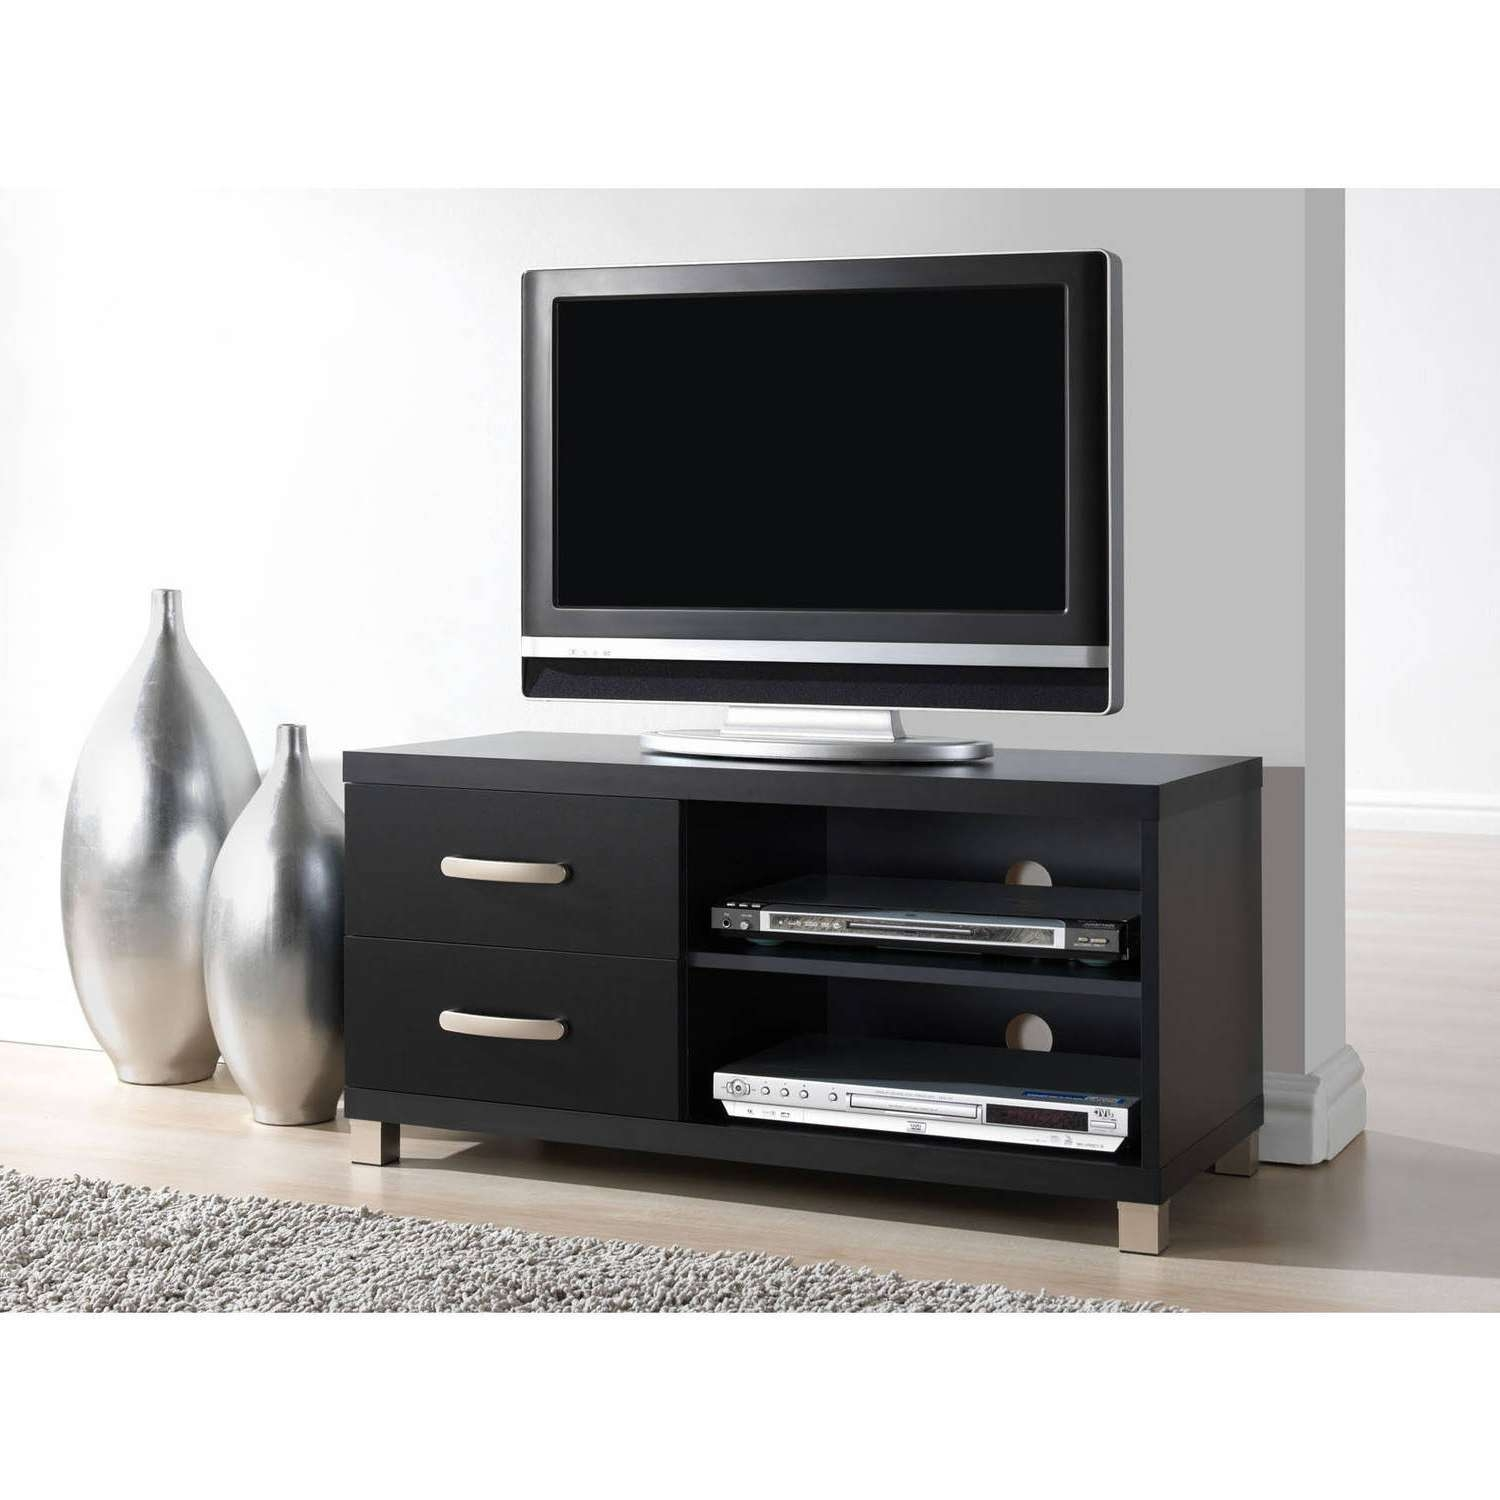 Techni Mobili 2 Drawer Tv Cabinet, Black – Walmart Throughout Tv Cabinets With Drawers (View 17 of 20)